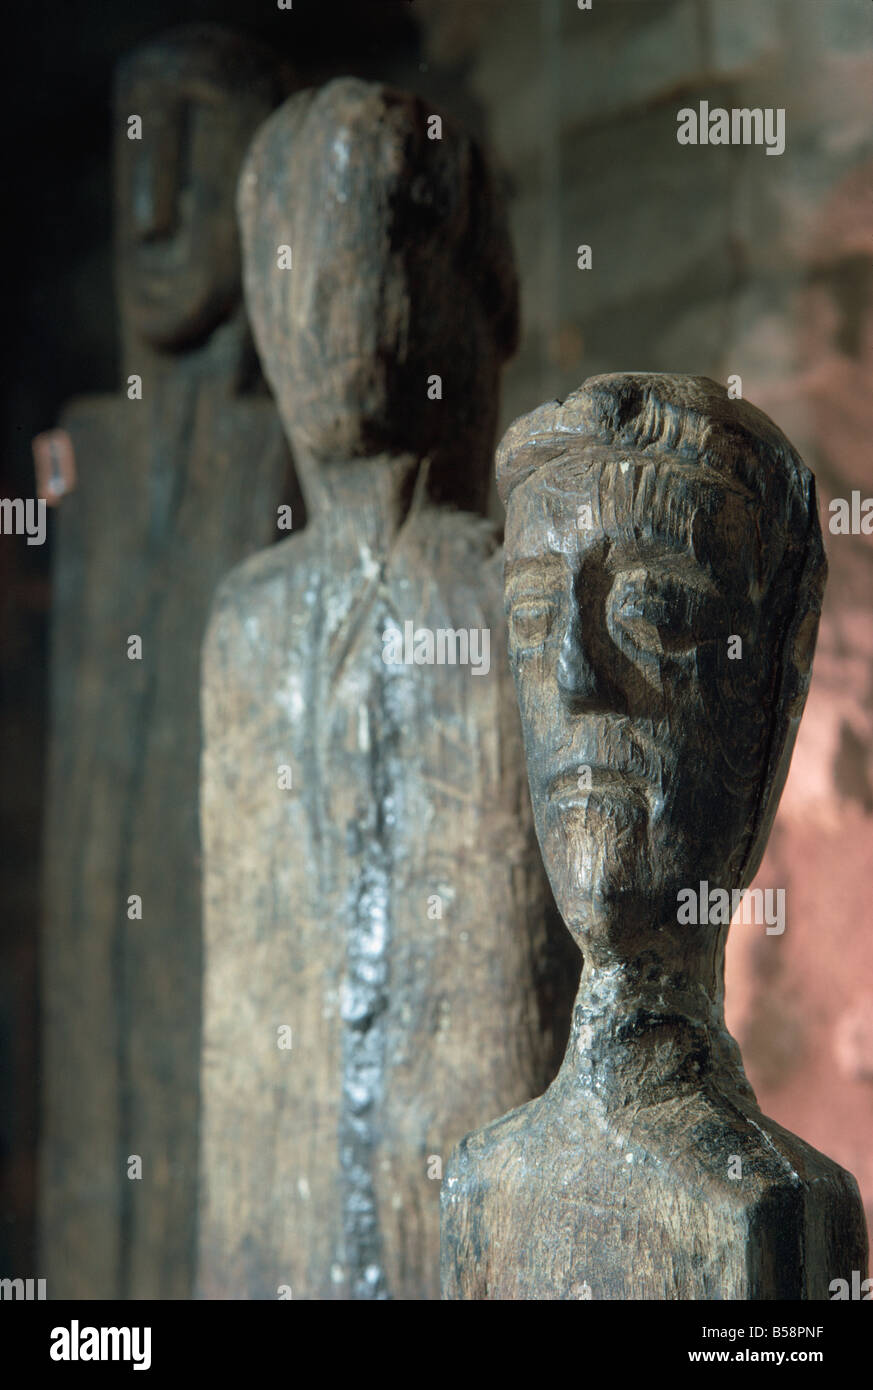 Statues of Gauls or Celts in oak, dating from around 200 BC, France, Europe - Stock Image